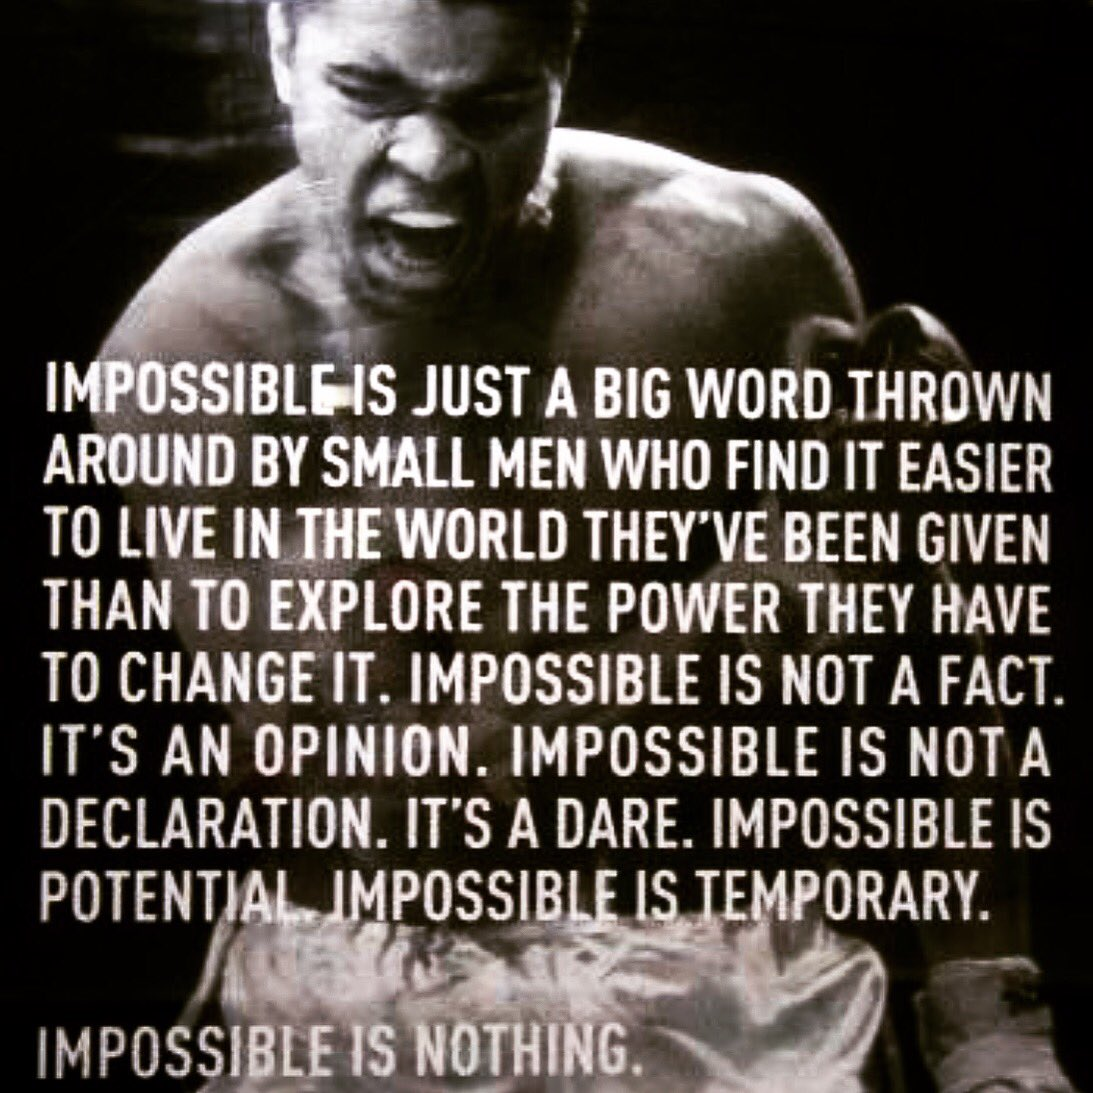 'Impossible is Nothing'. RIP #MahammadAli https://t.co/k02N6E9PZ5